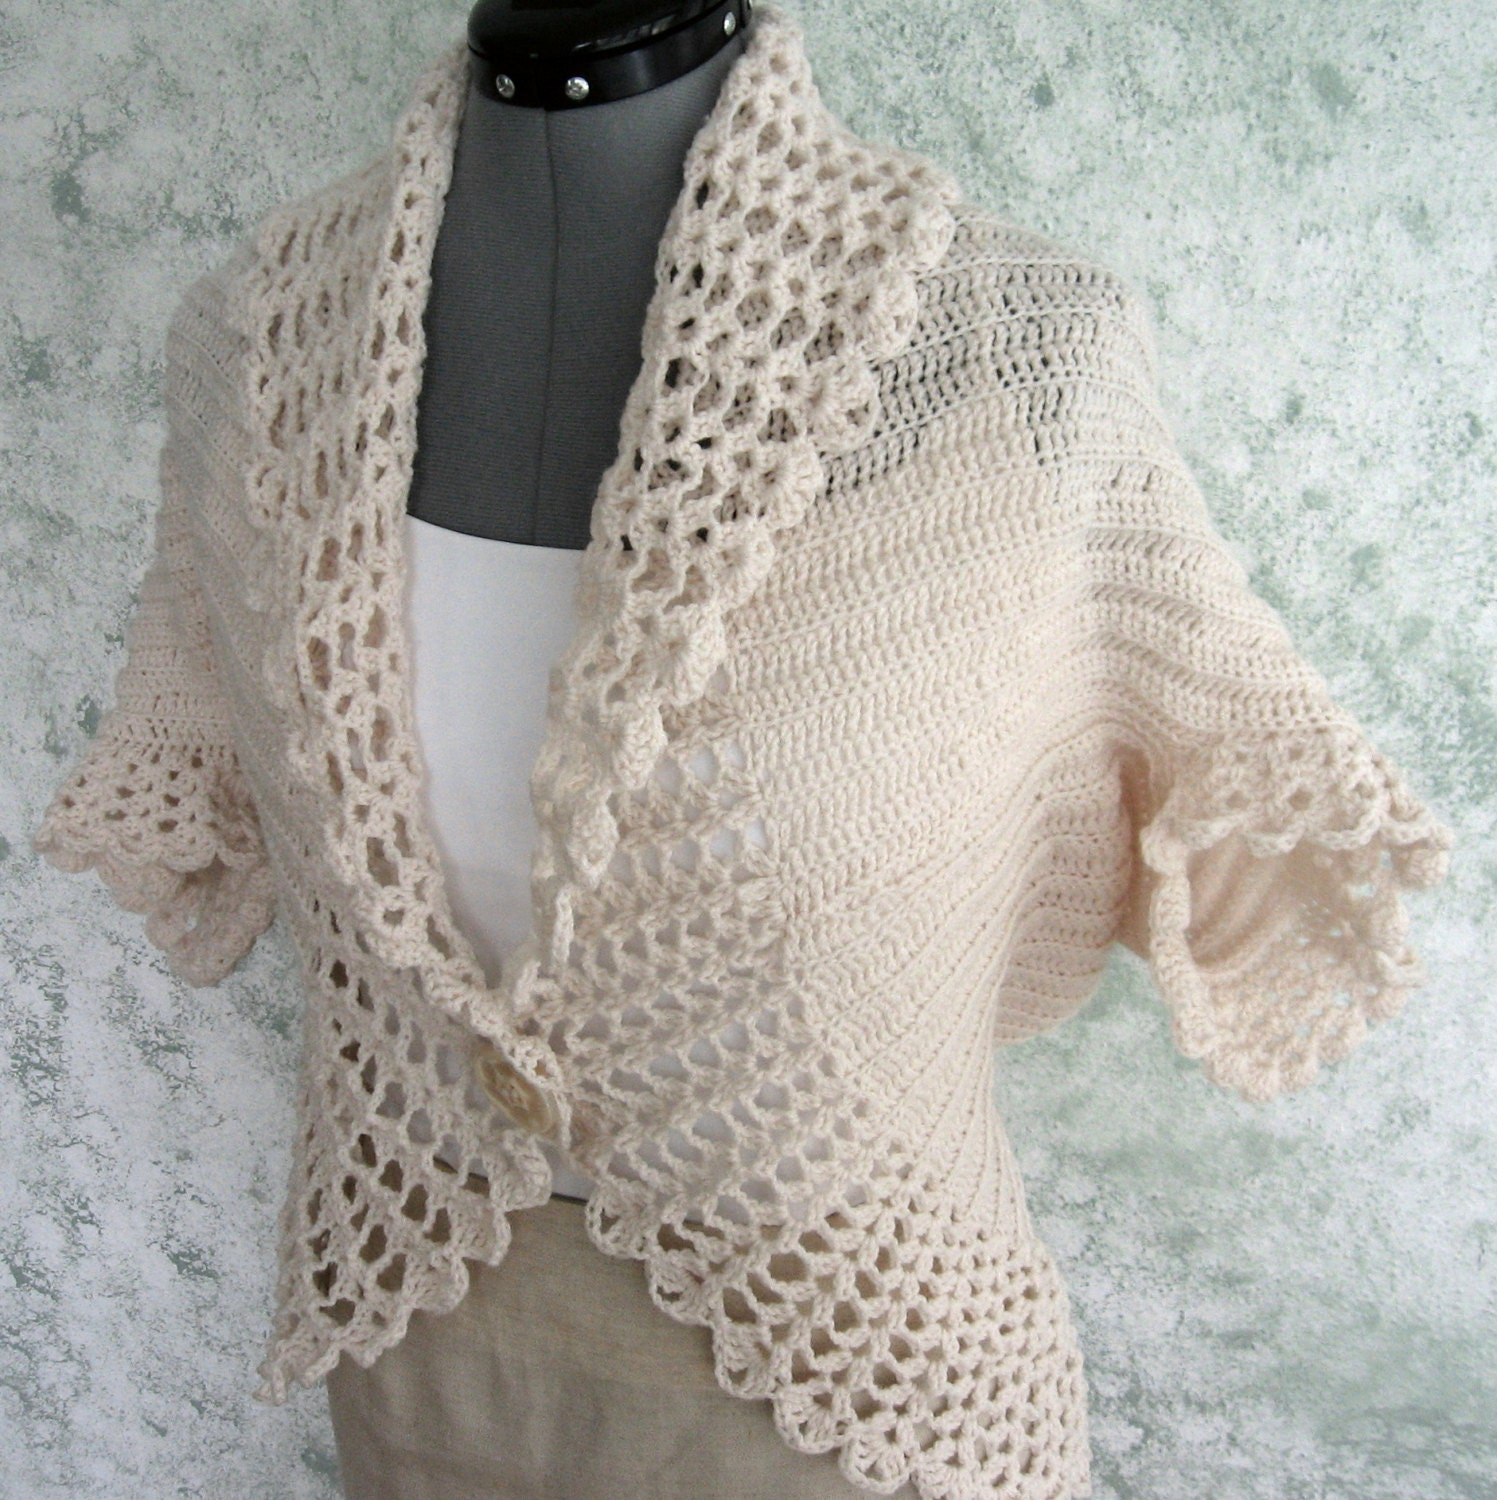 Crochet Lace Bolero Pattern: Free lacy crochet patterns and knit ...